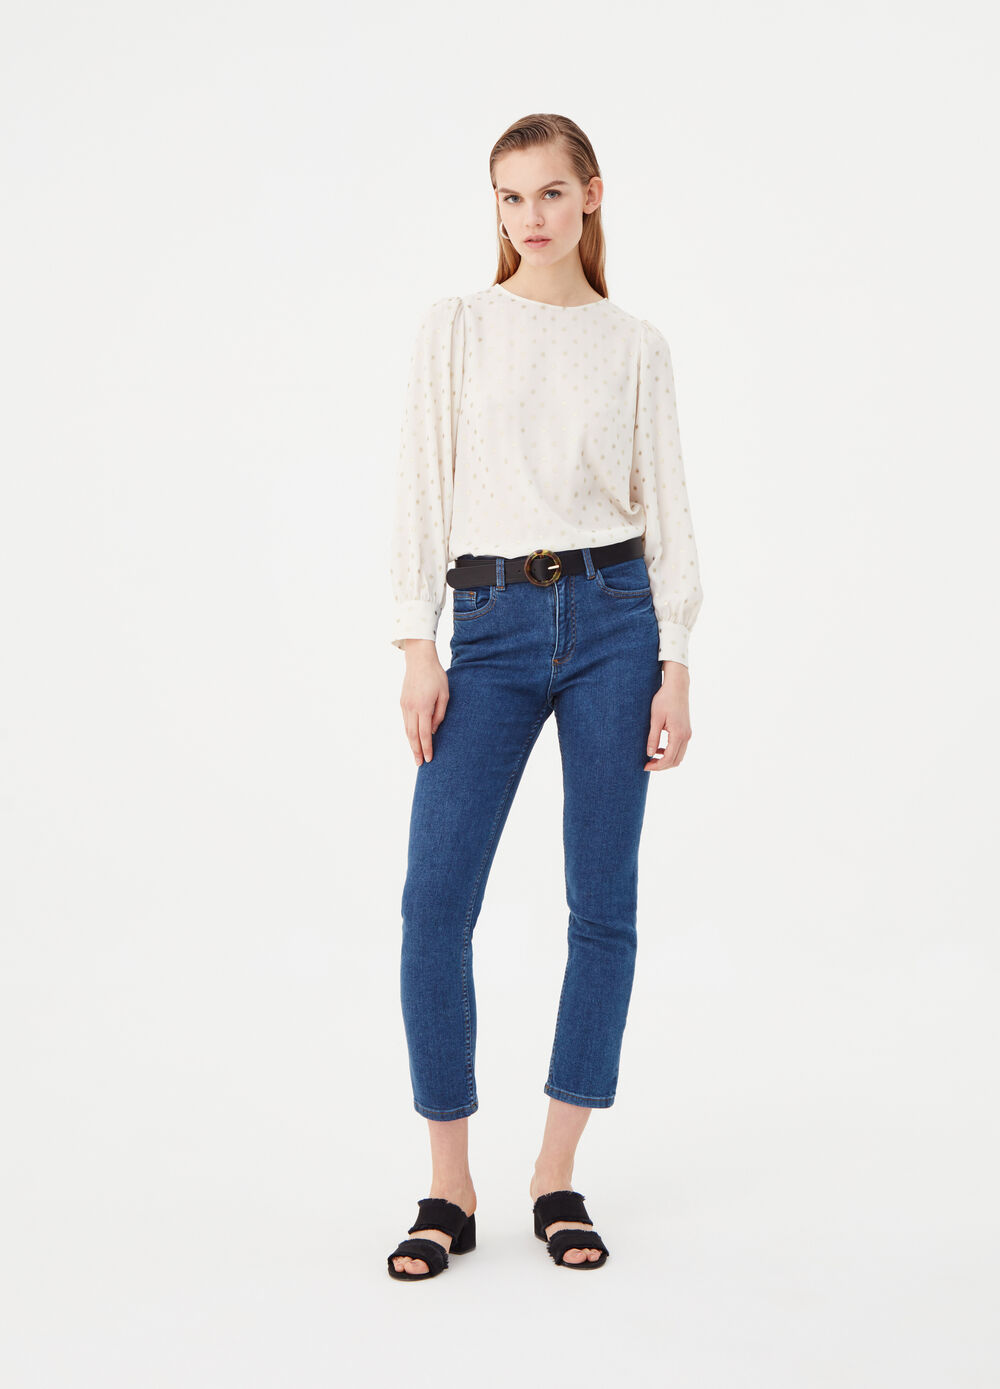 Crêpe blouse with wide polka dot sleeves